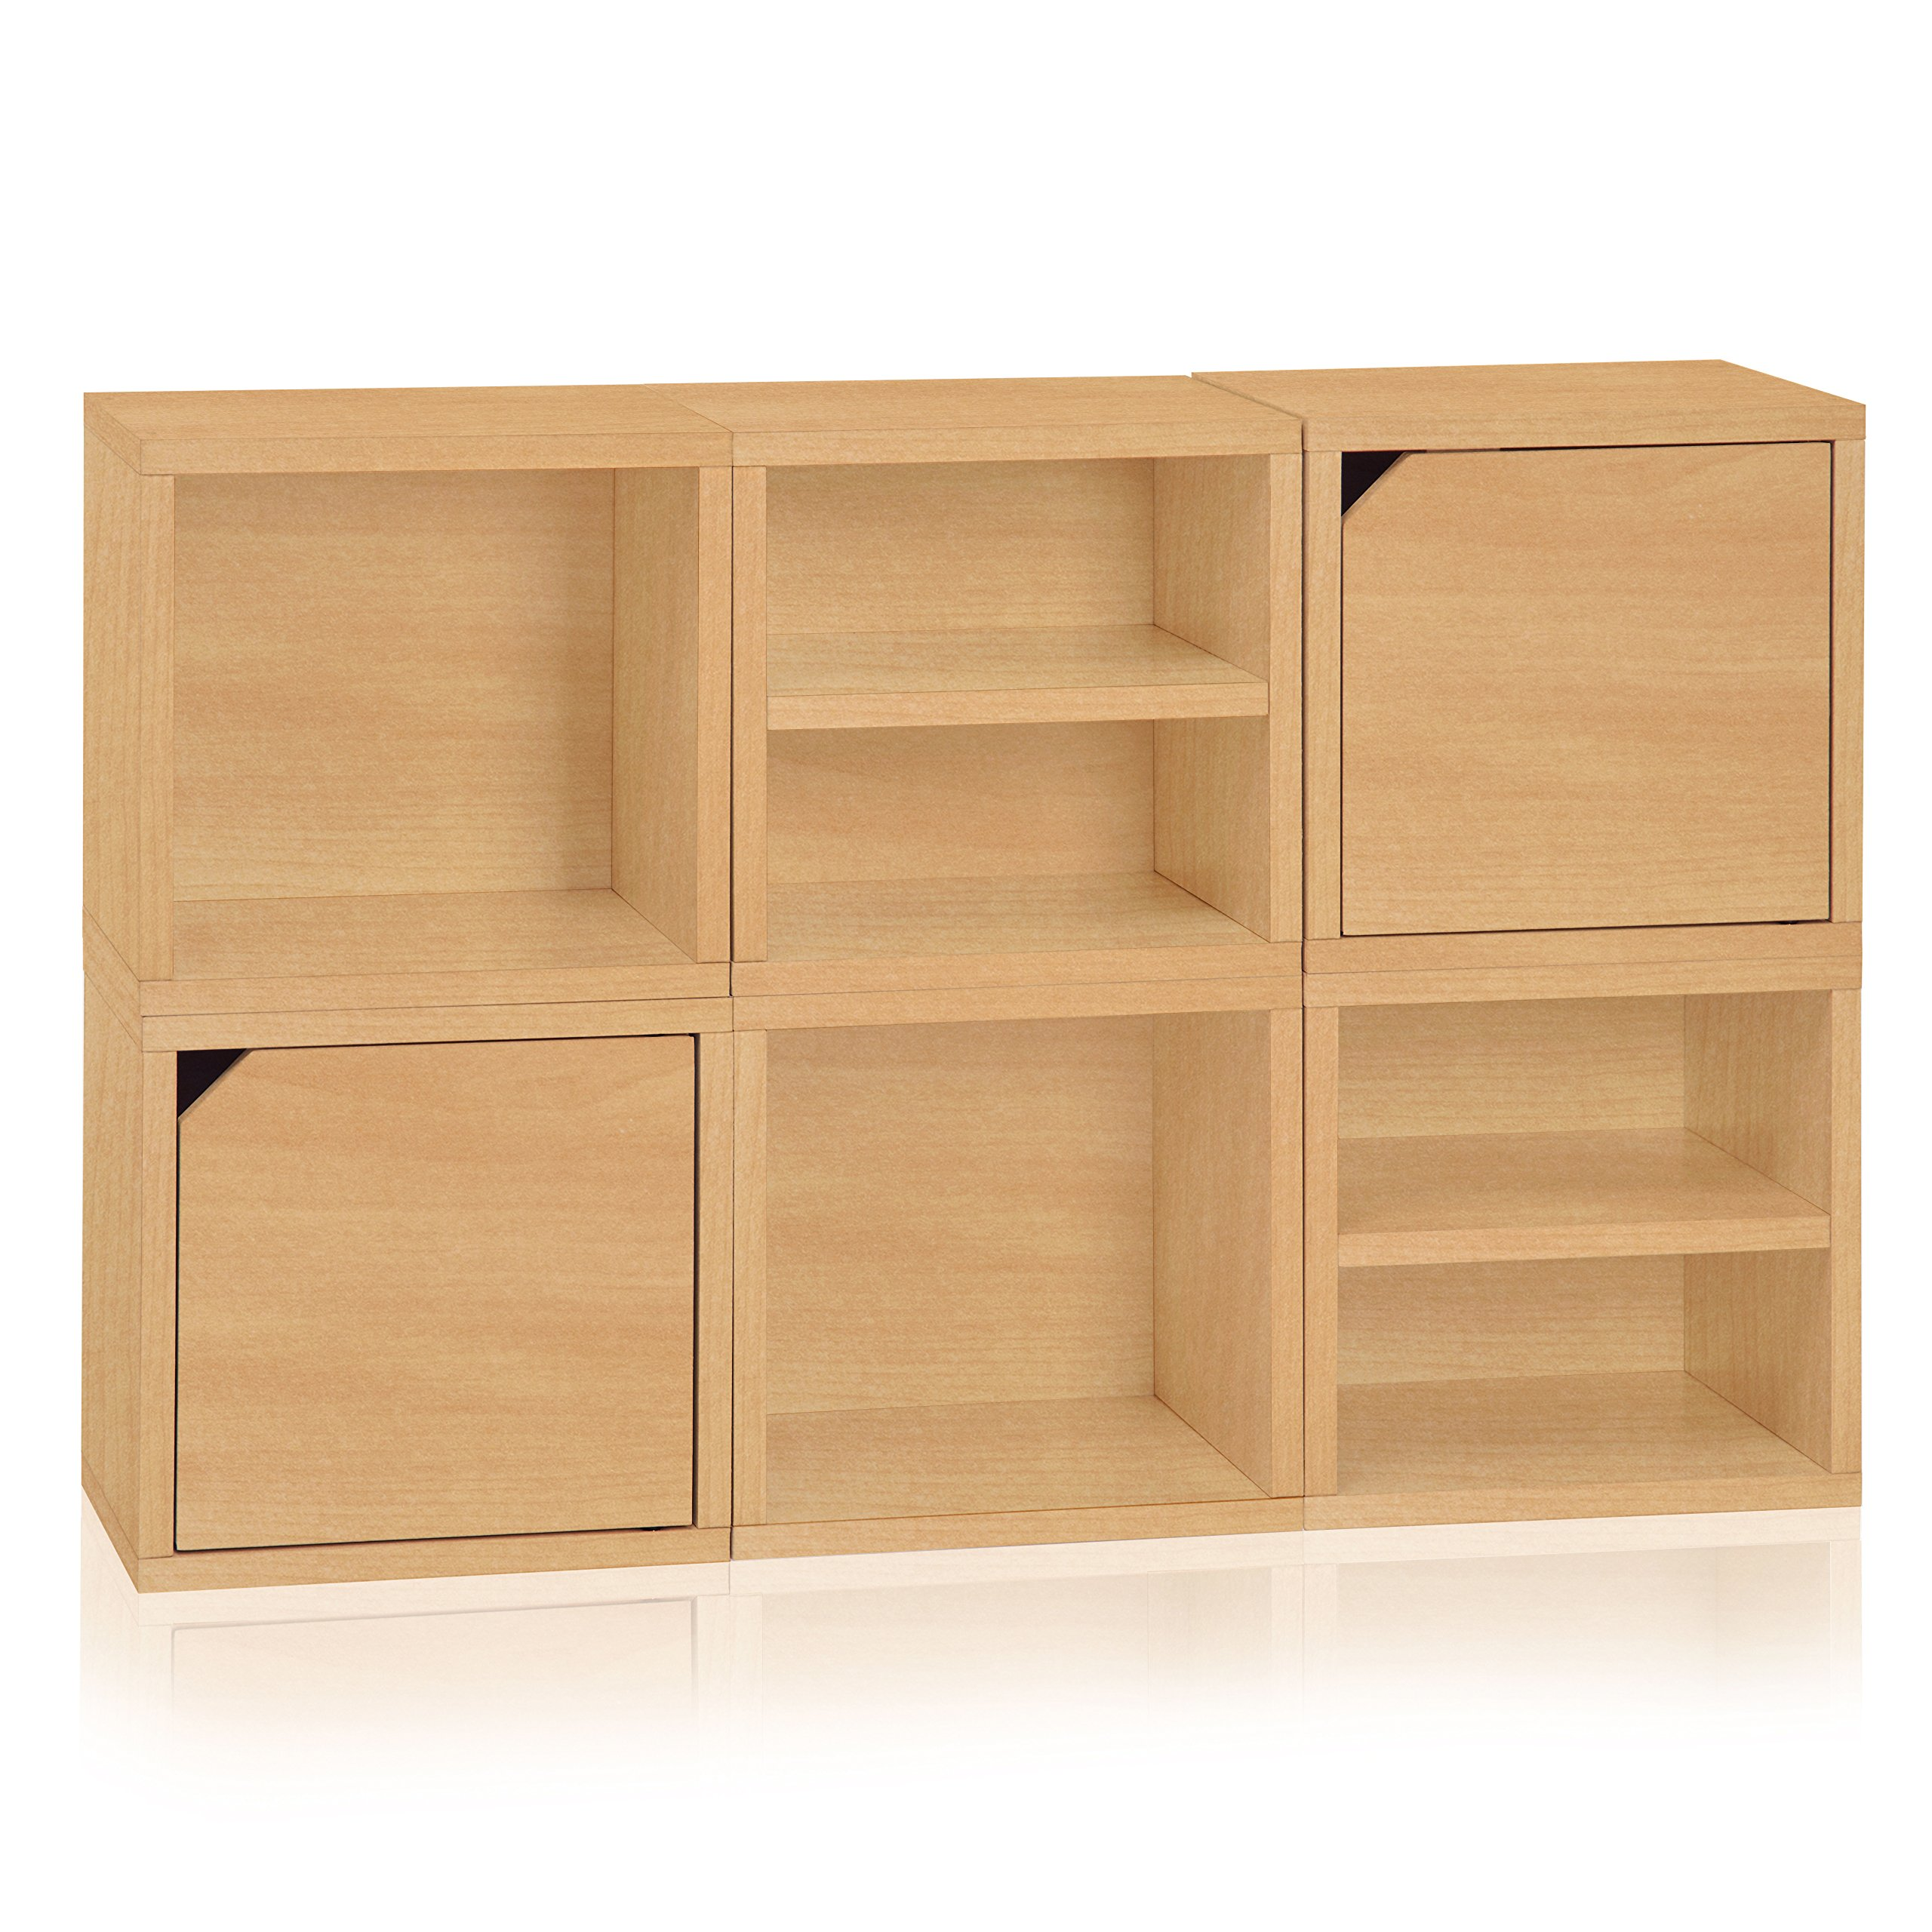 Way Basics 6 ​Modular 3​-​in​-​1 Shelf Connect Cube Storage System, Natural Wood Grain (made from sustainable non-toxic zBoard paperboard)